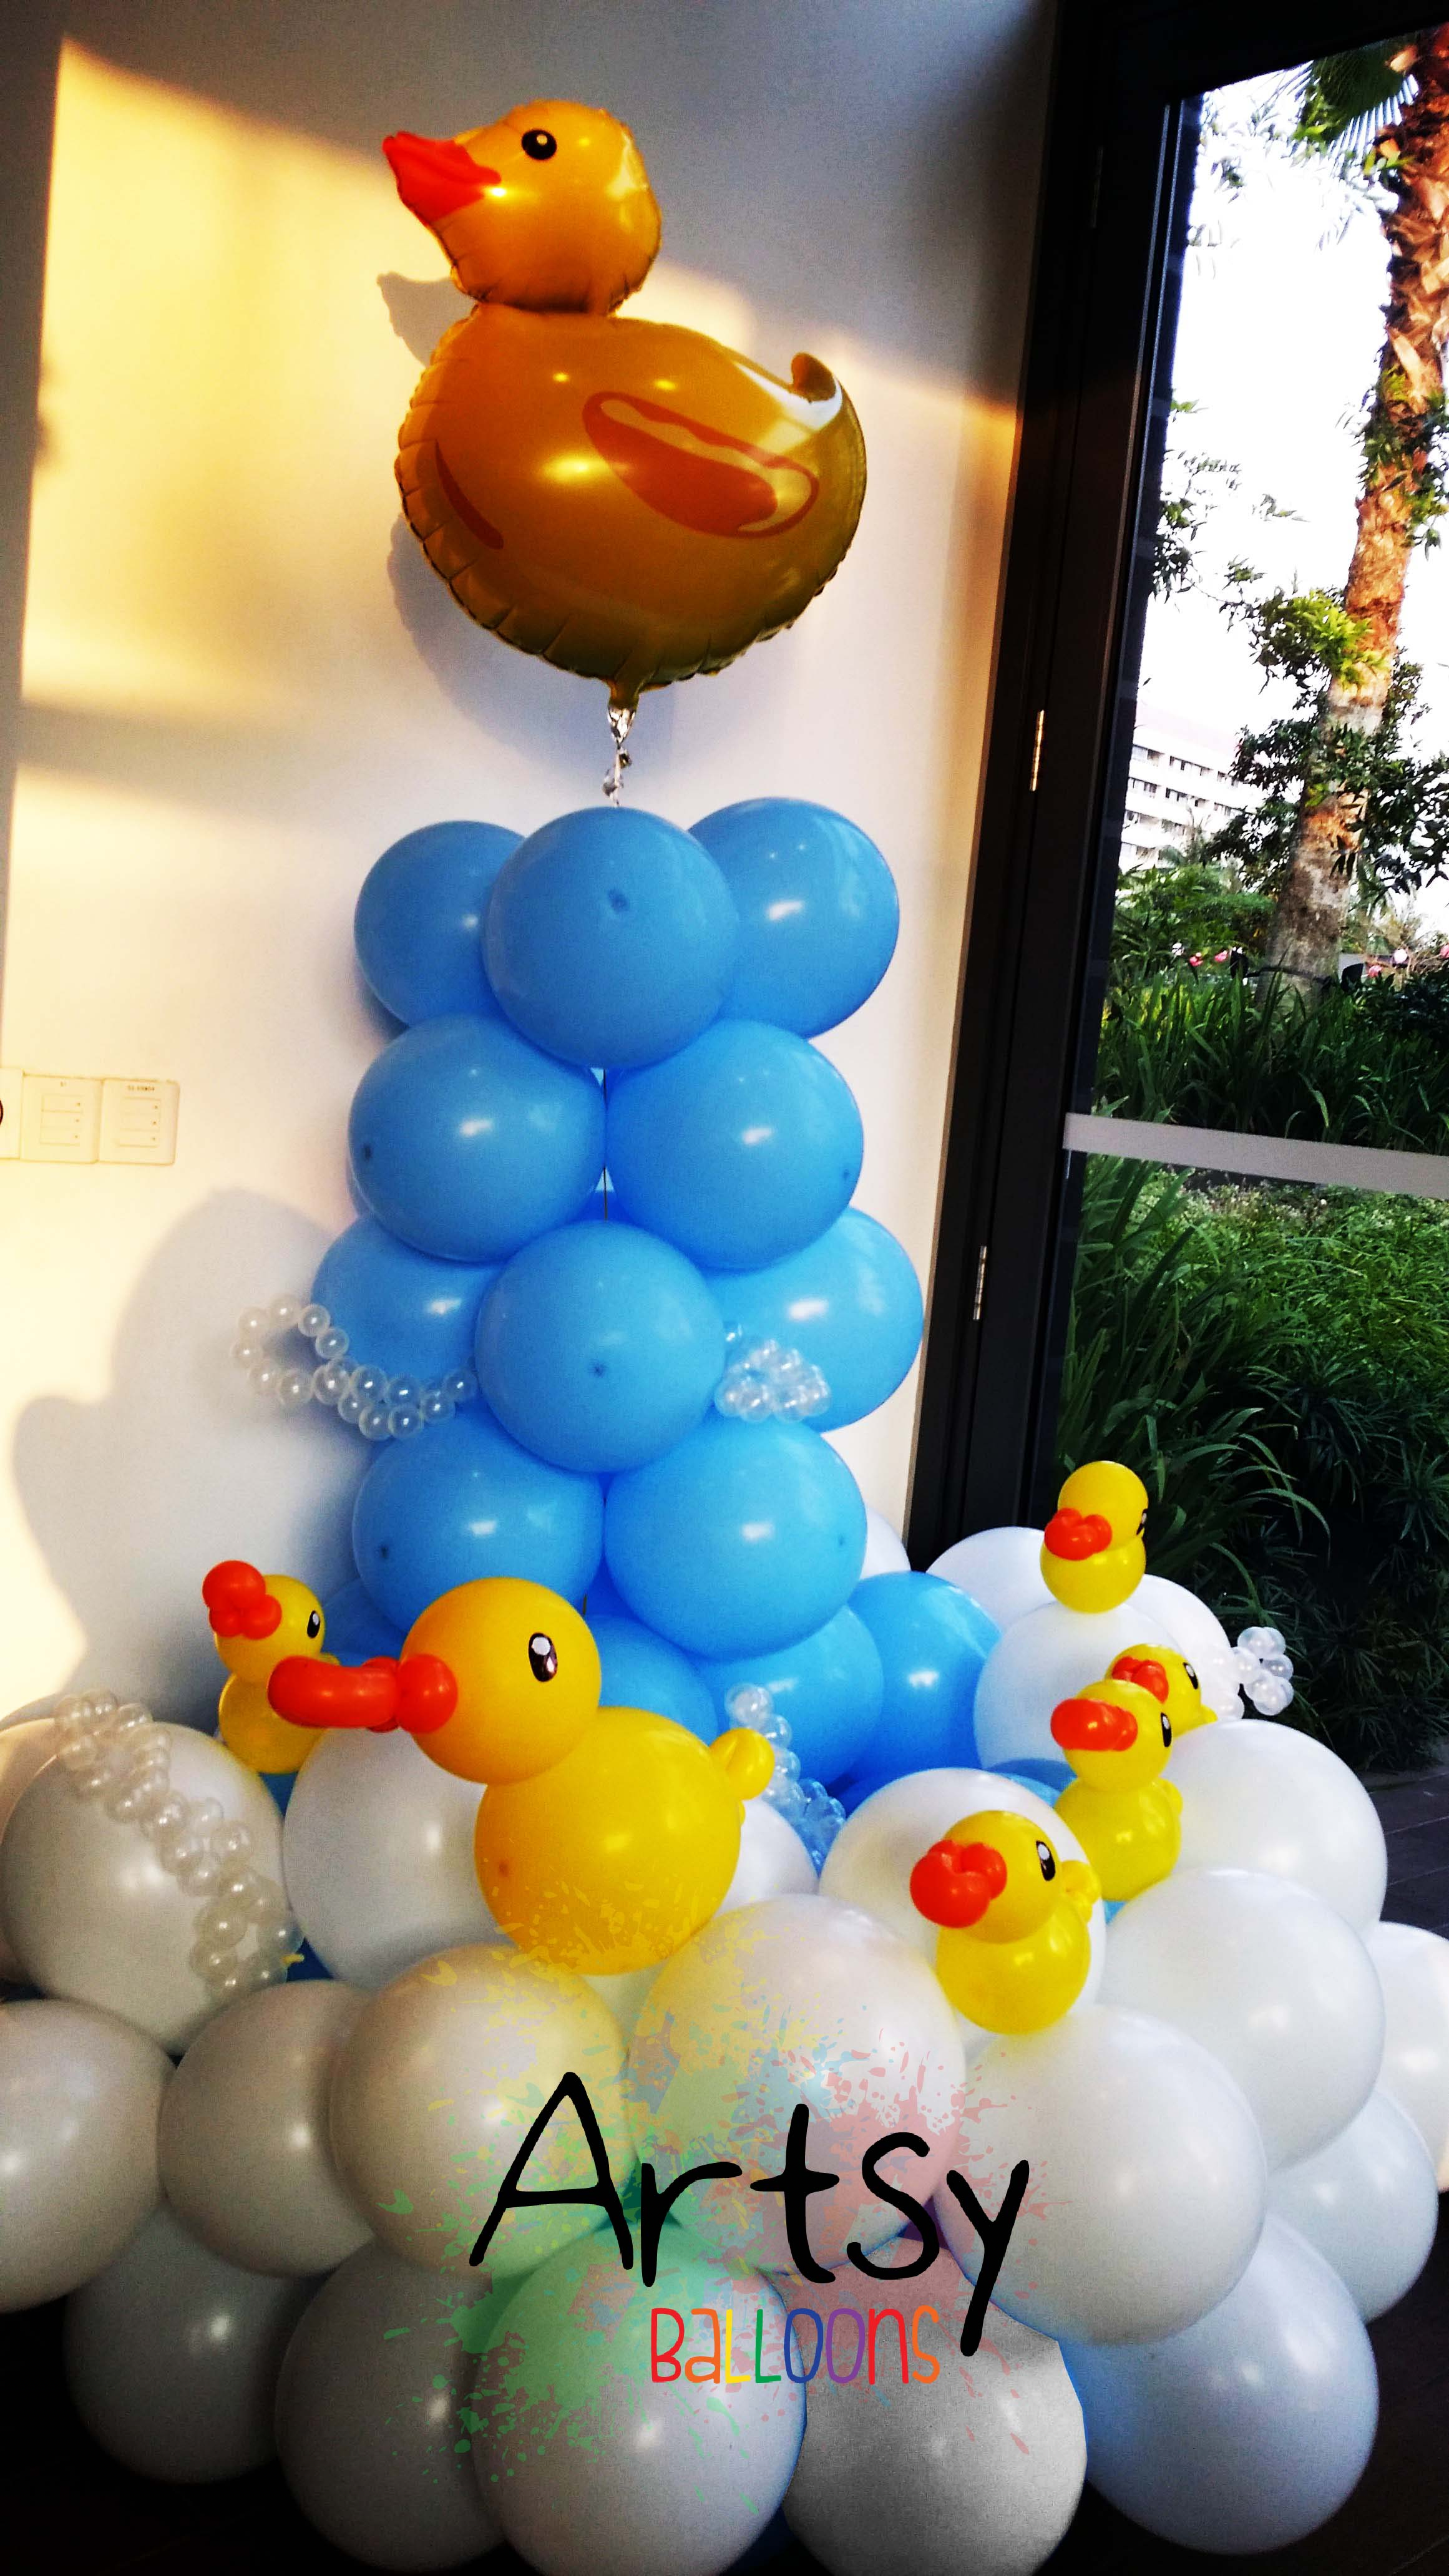 , Fully Customised Balloon Backdrop + Arch with Advance Letterings + Rainbow Arch + Balloon Apple Tree  + Balloon Girl + Birthday Cake, Singapore Balloon Decoration Services - Balloon Workshop and Balloon Sculpting